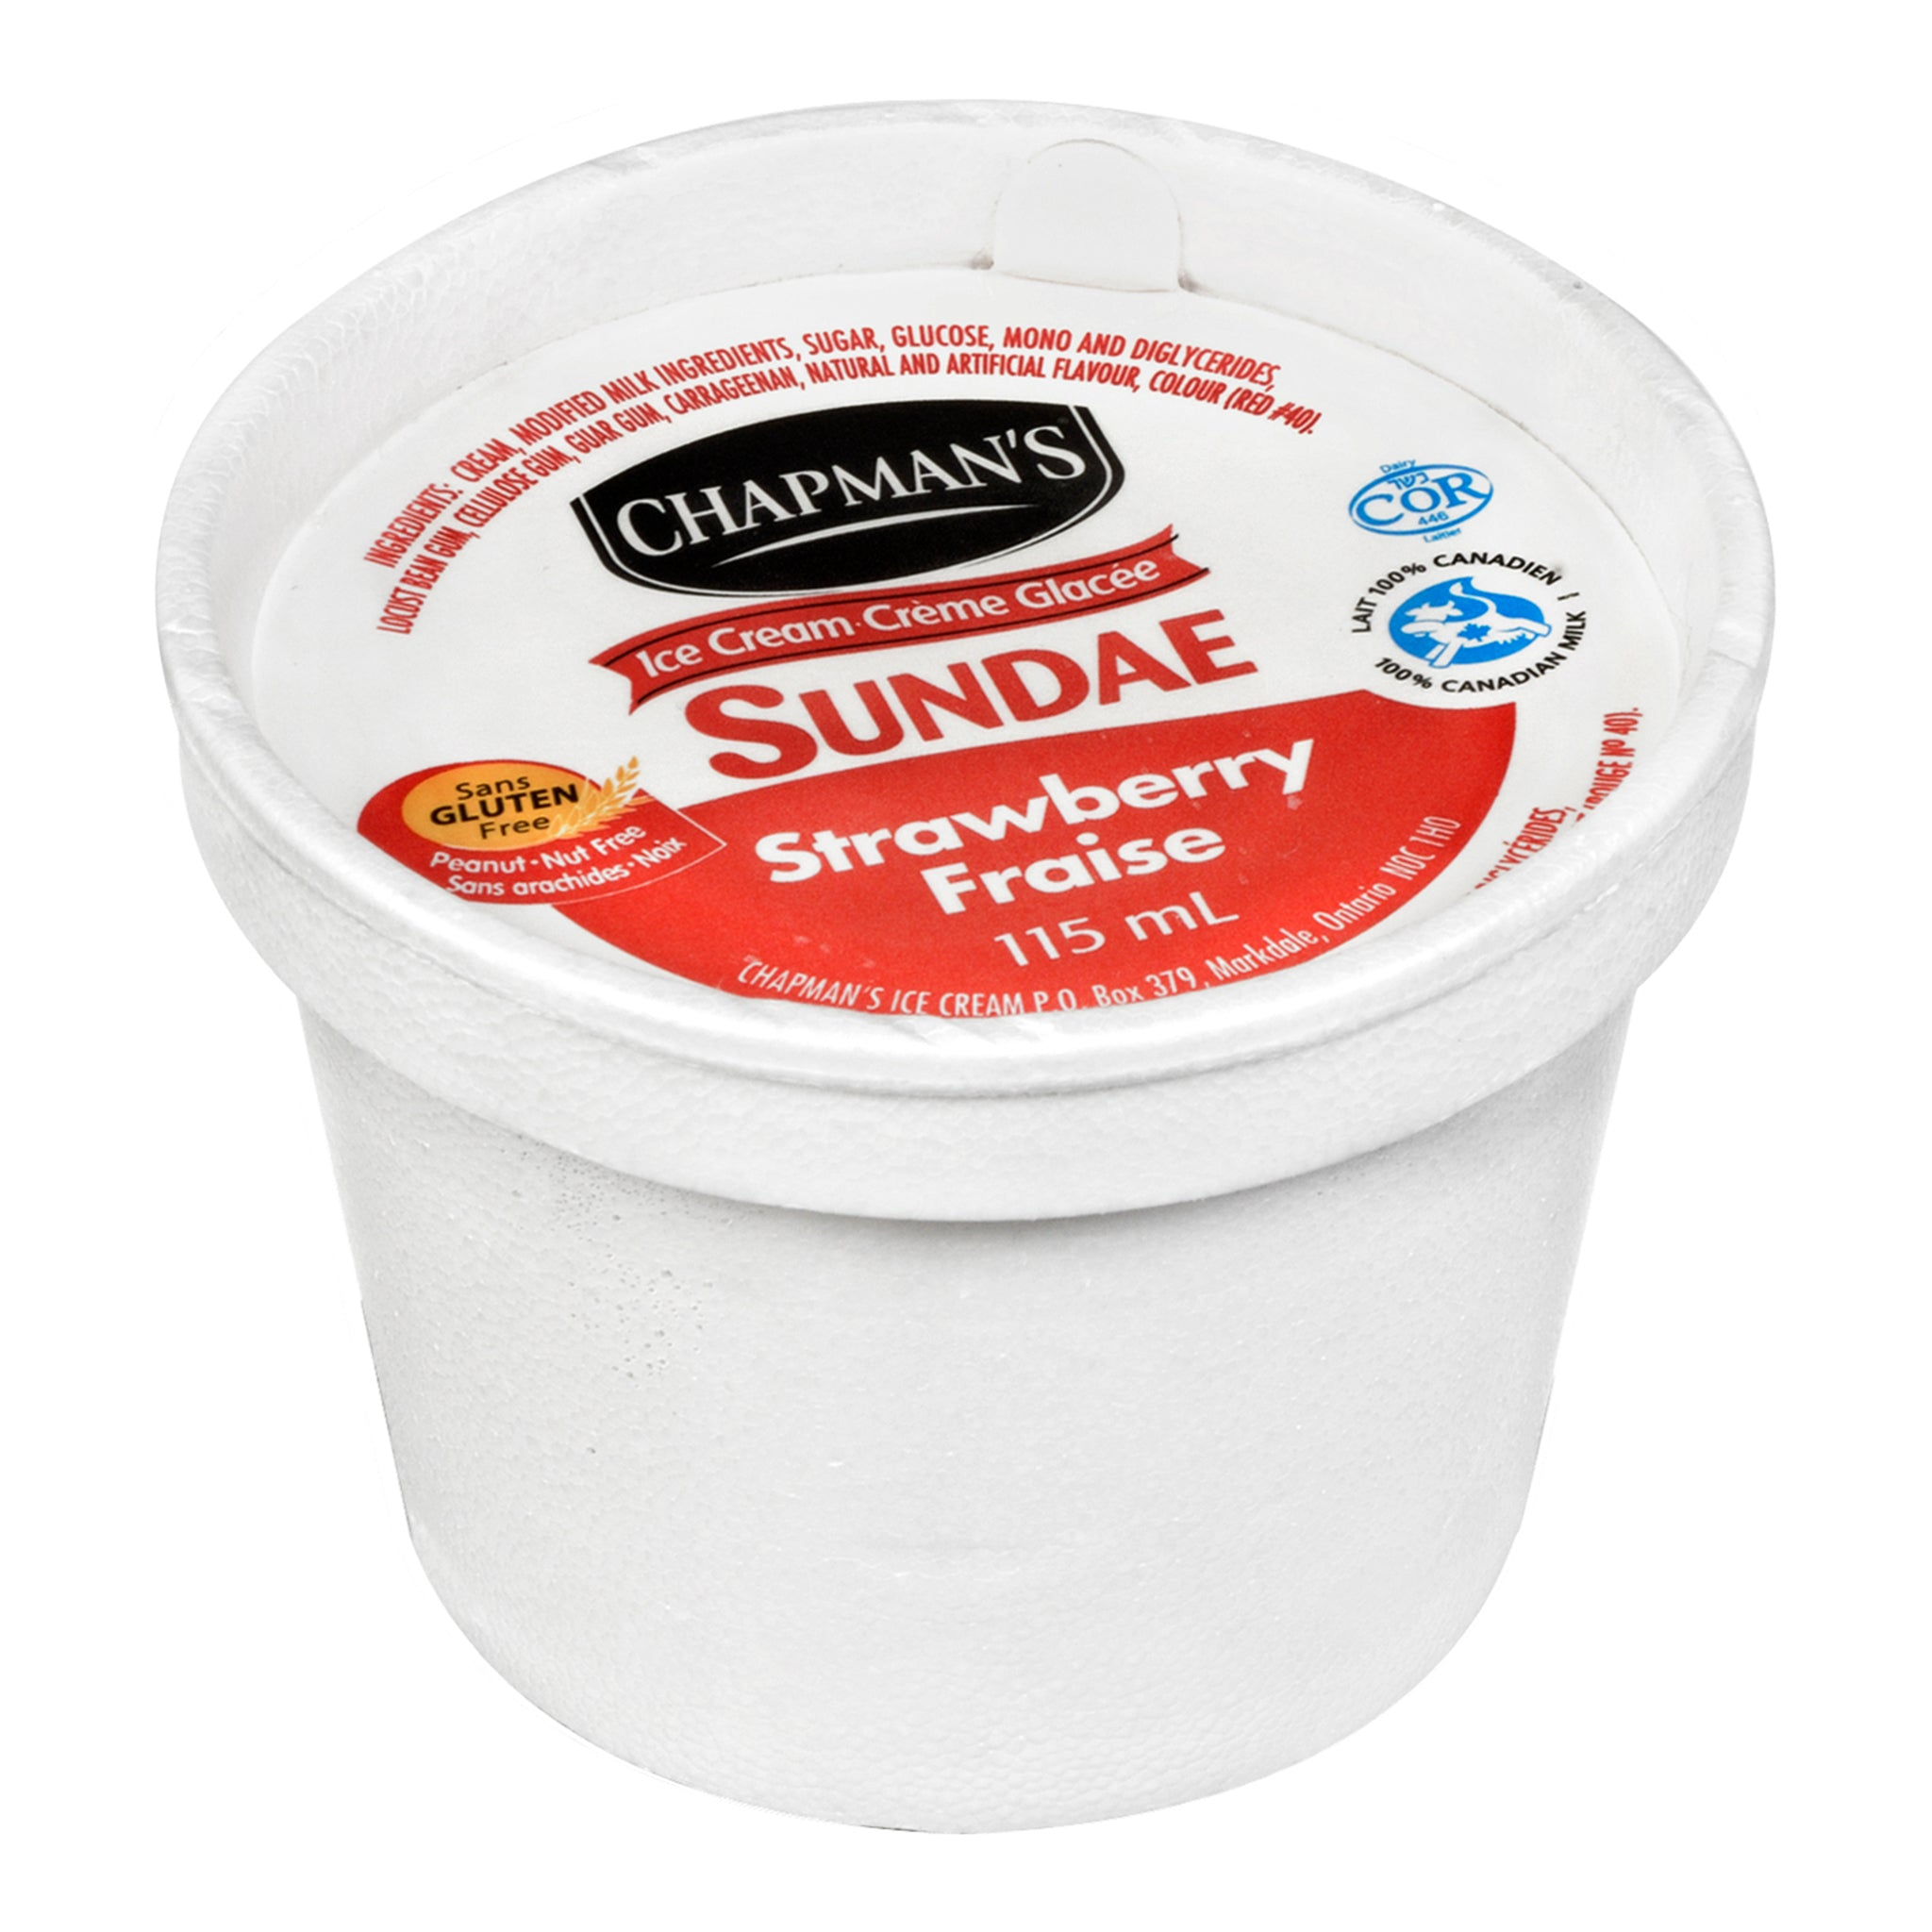 Chapman's Frozen Strawberry Ice Cream Cups 115 ml - 24 Pack [$0.58/each]